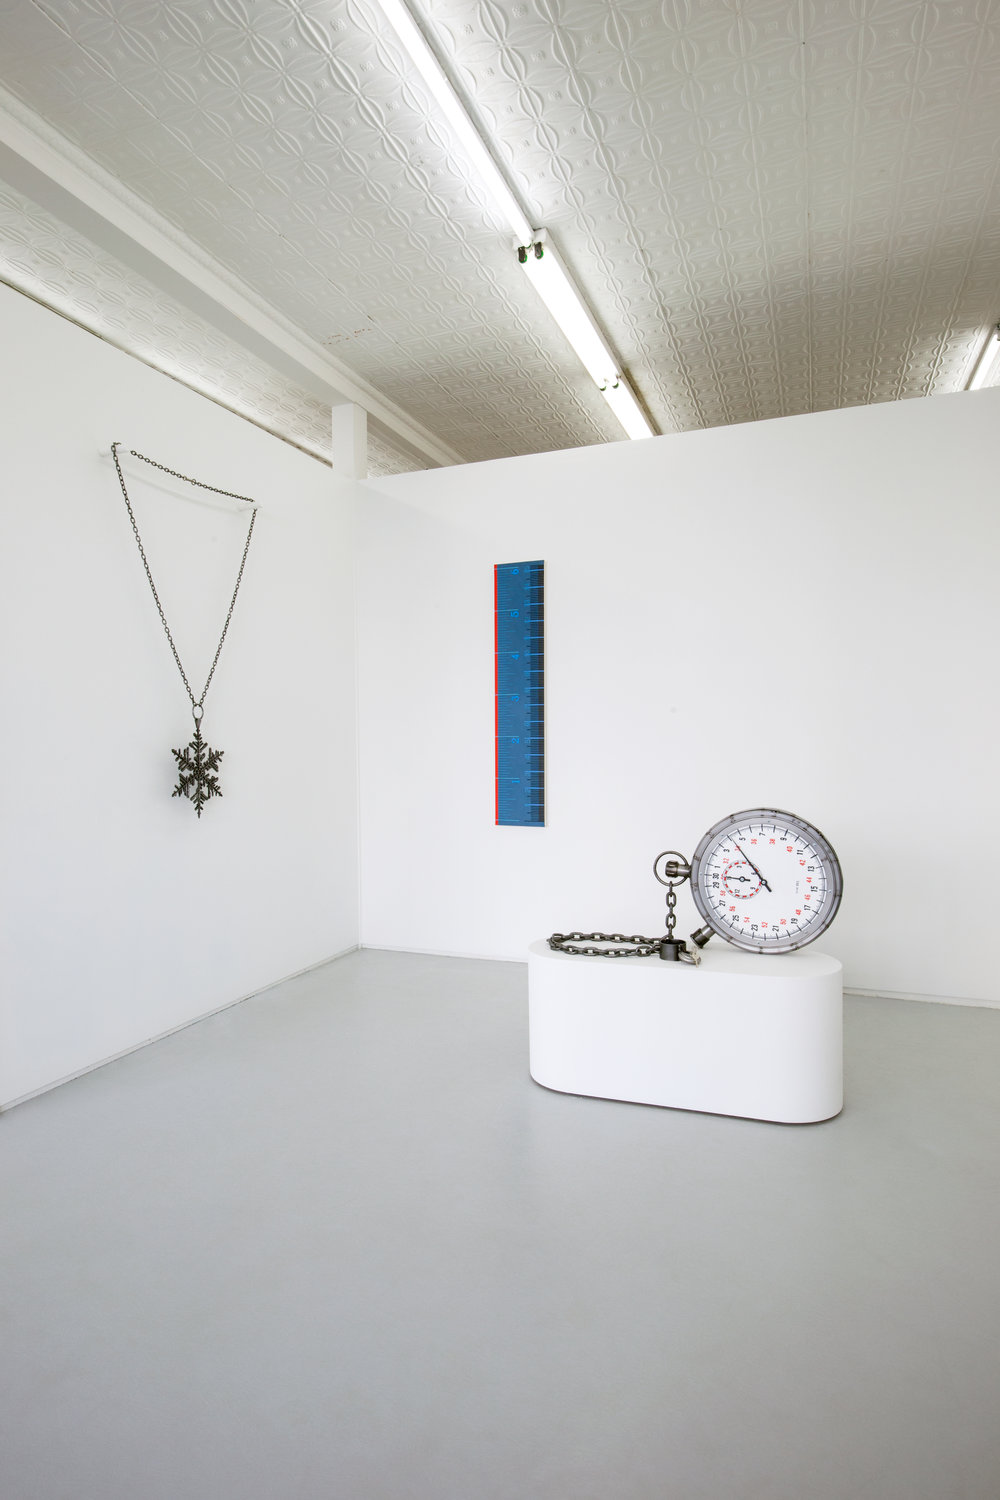 Nick_Doyle-Soft_Arrest-Installation_View-Mrs-12.jpg